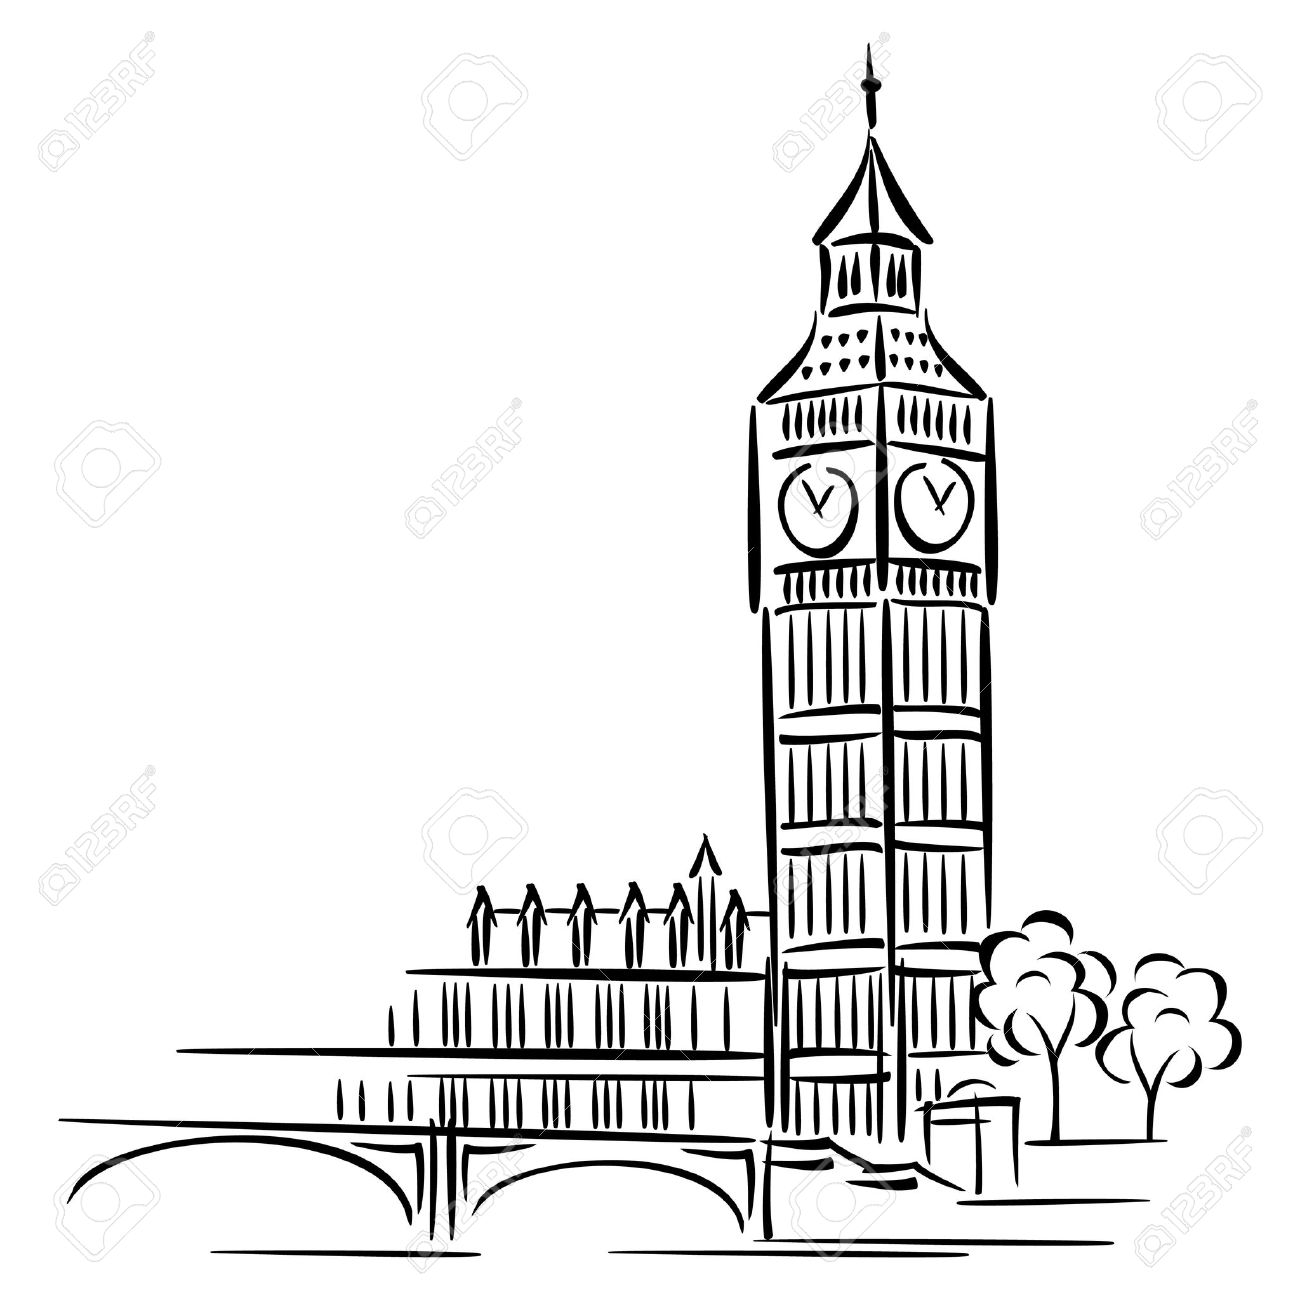 London Clock Tower Clipart.